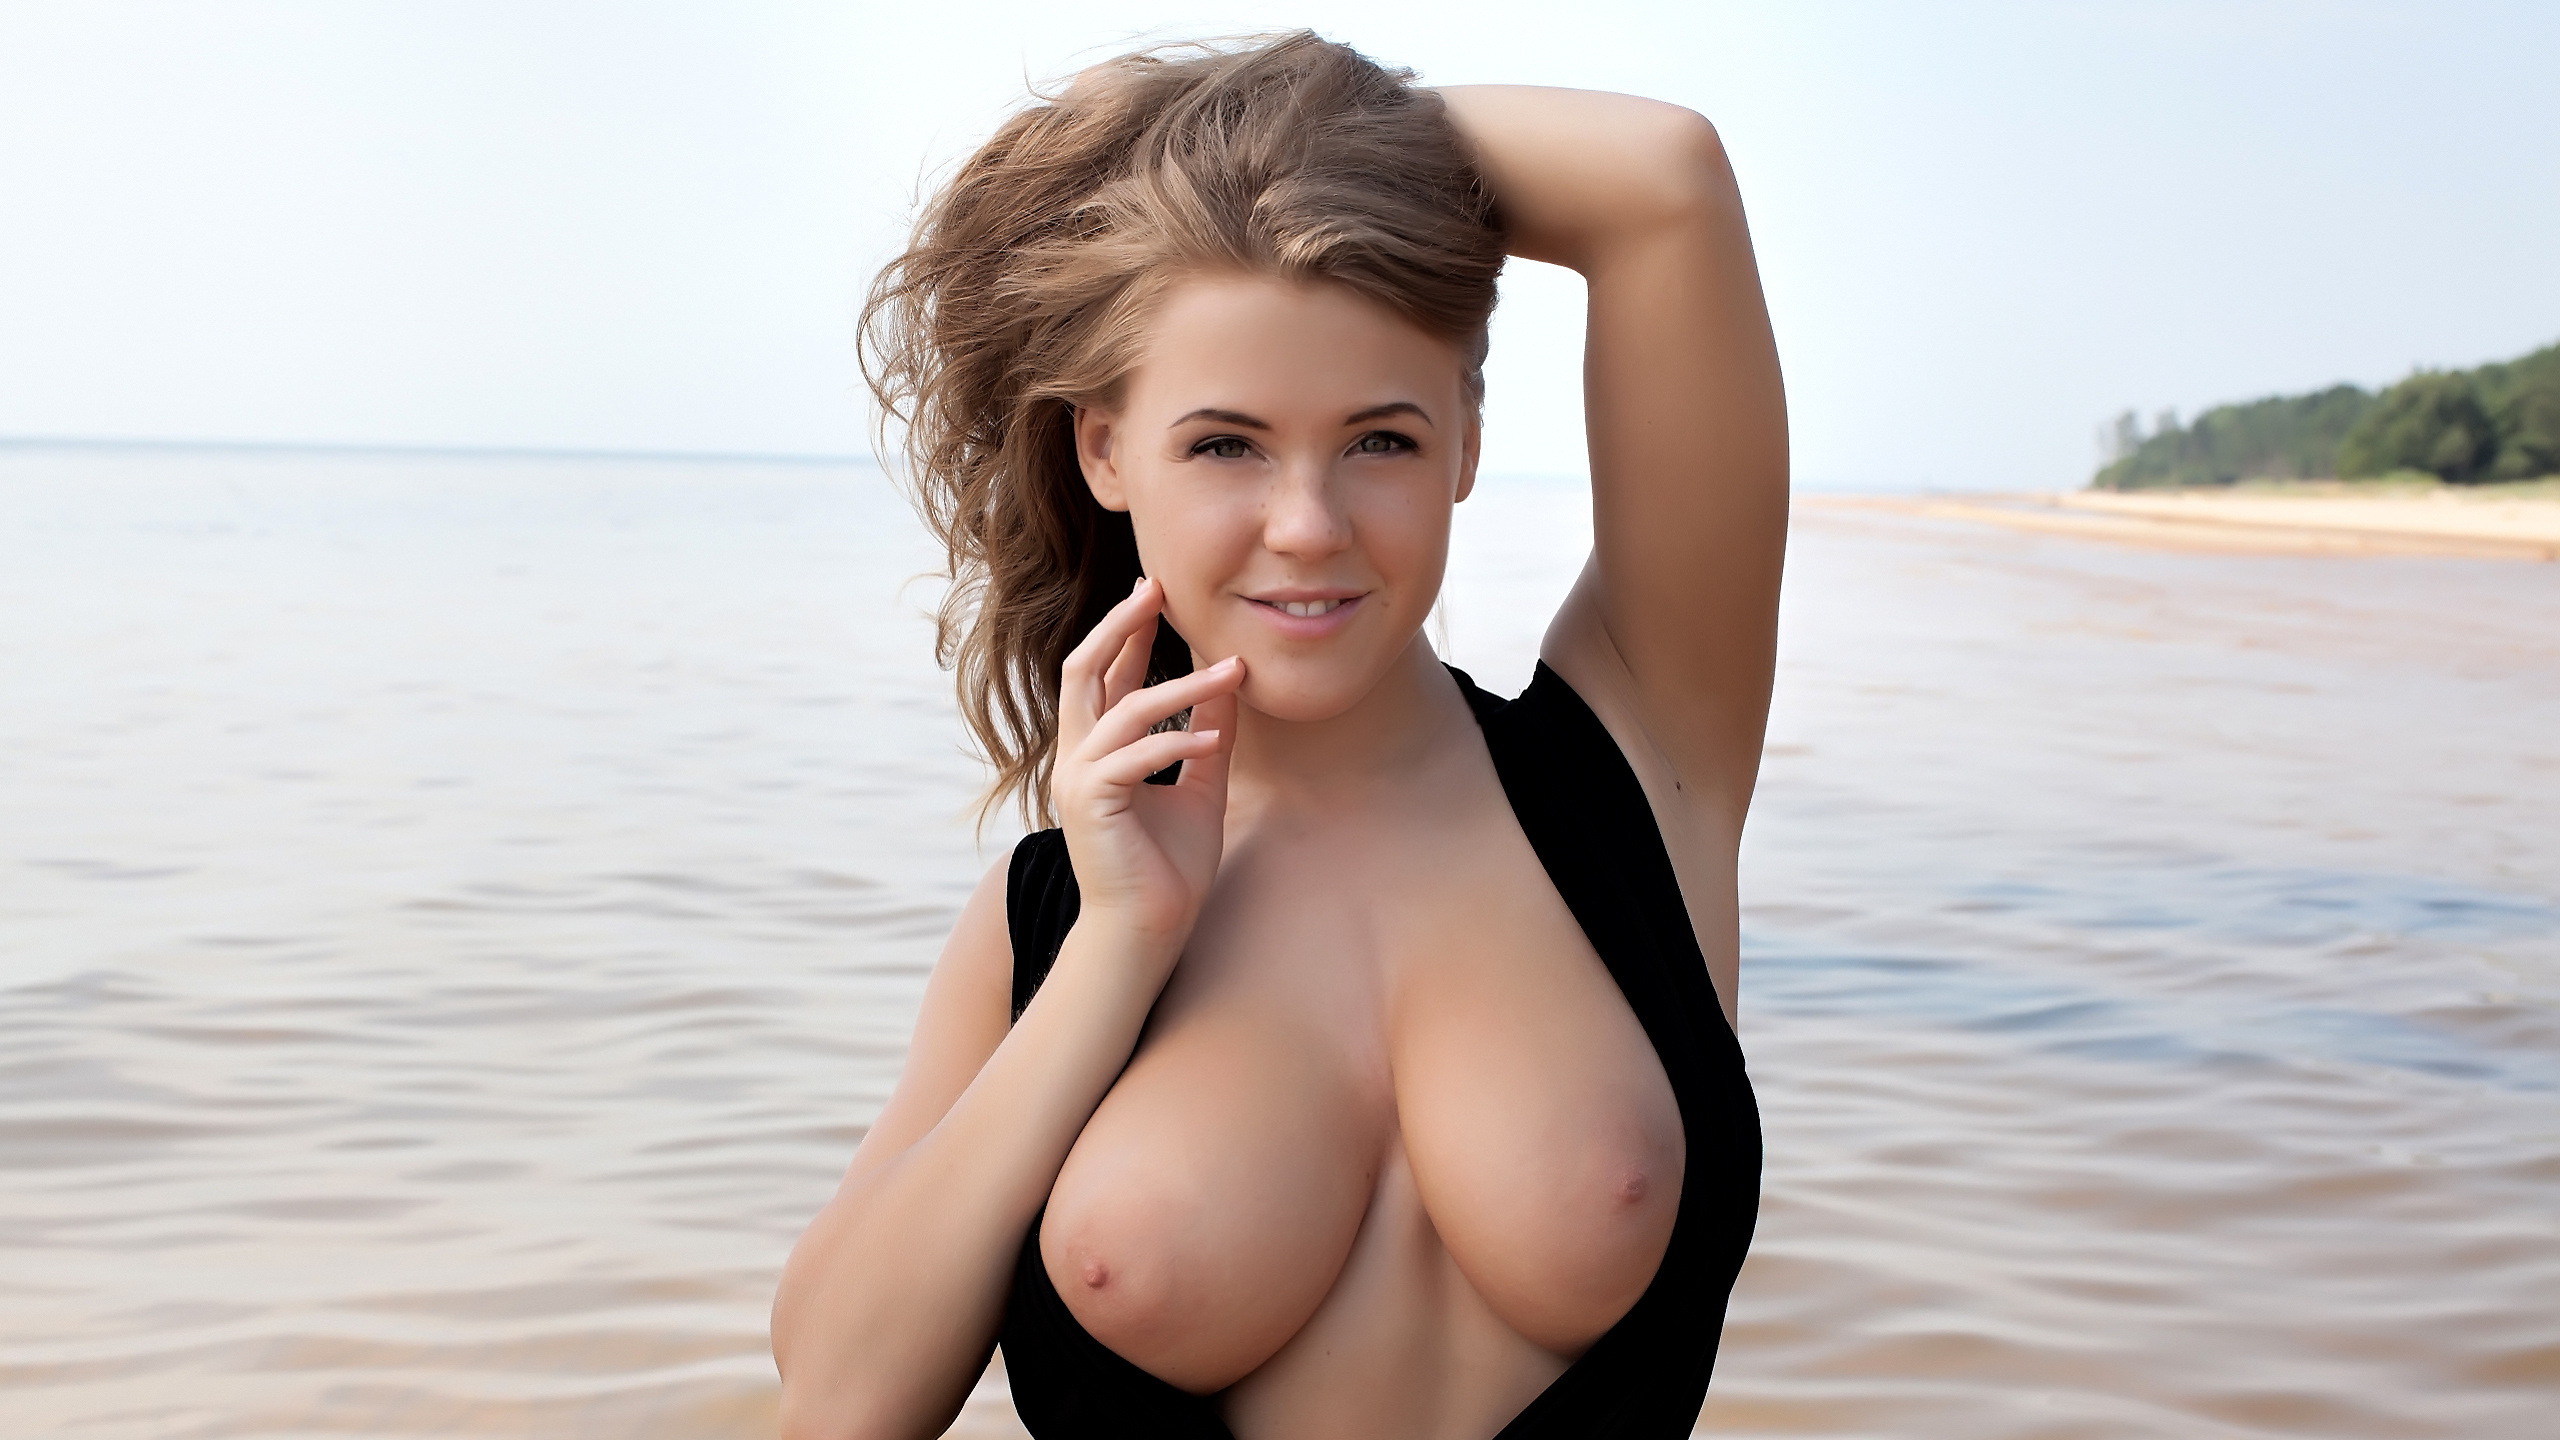 Big natural boobs 2